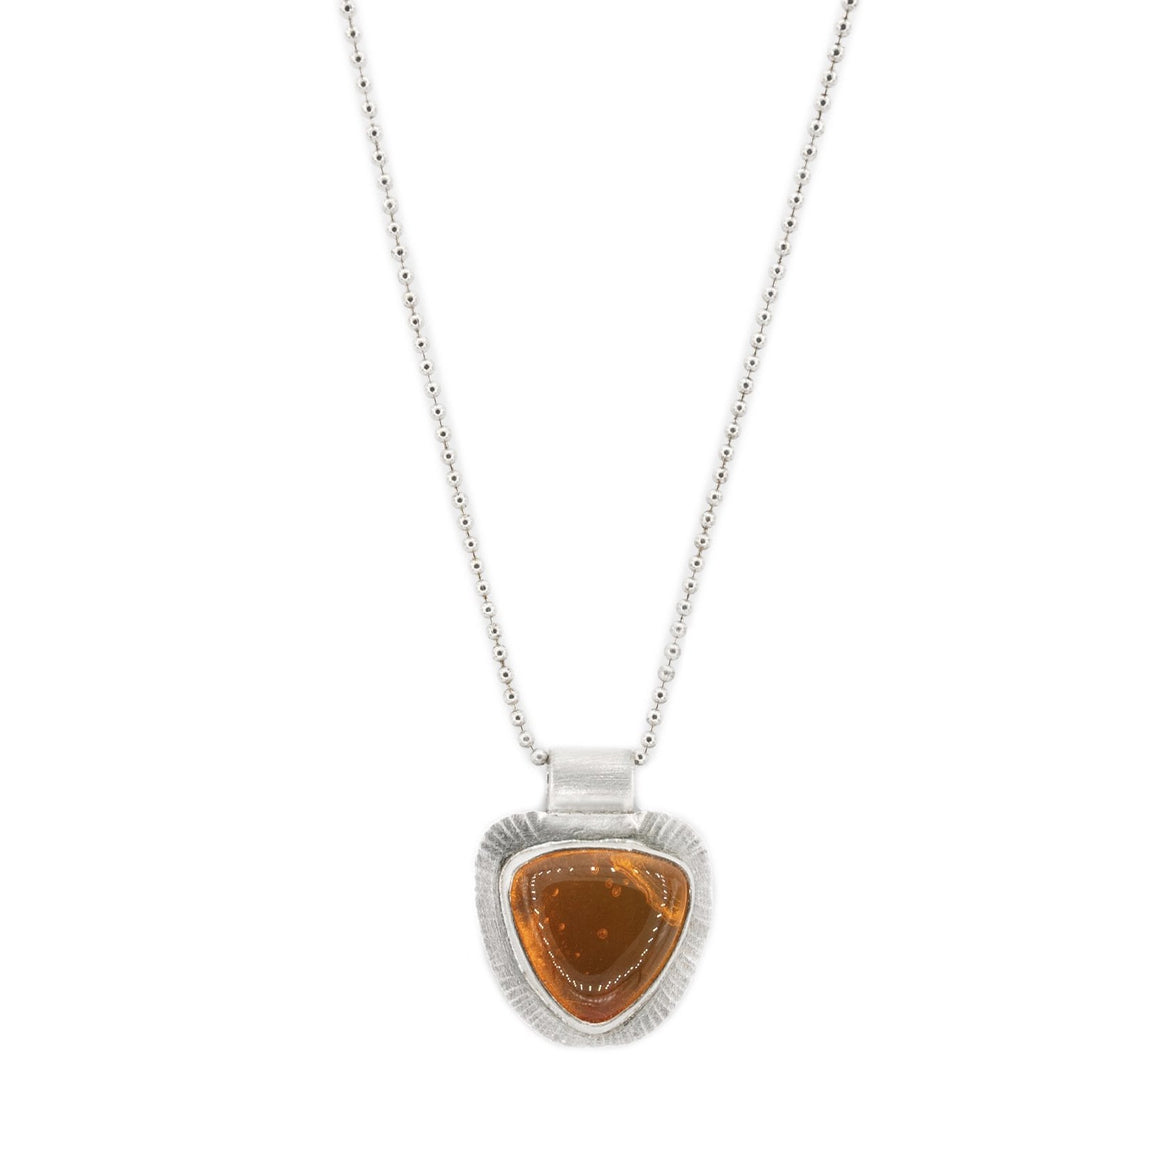 Oregon fire opal simple necklace in silver by Original Sin jewelry